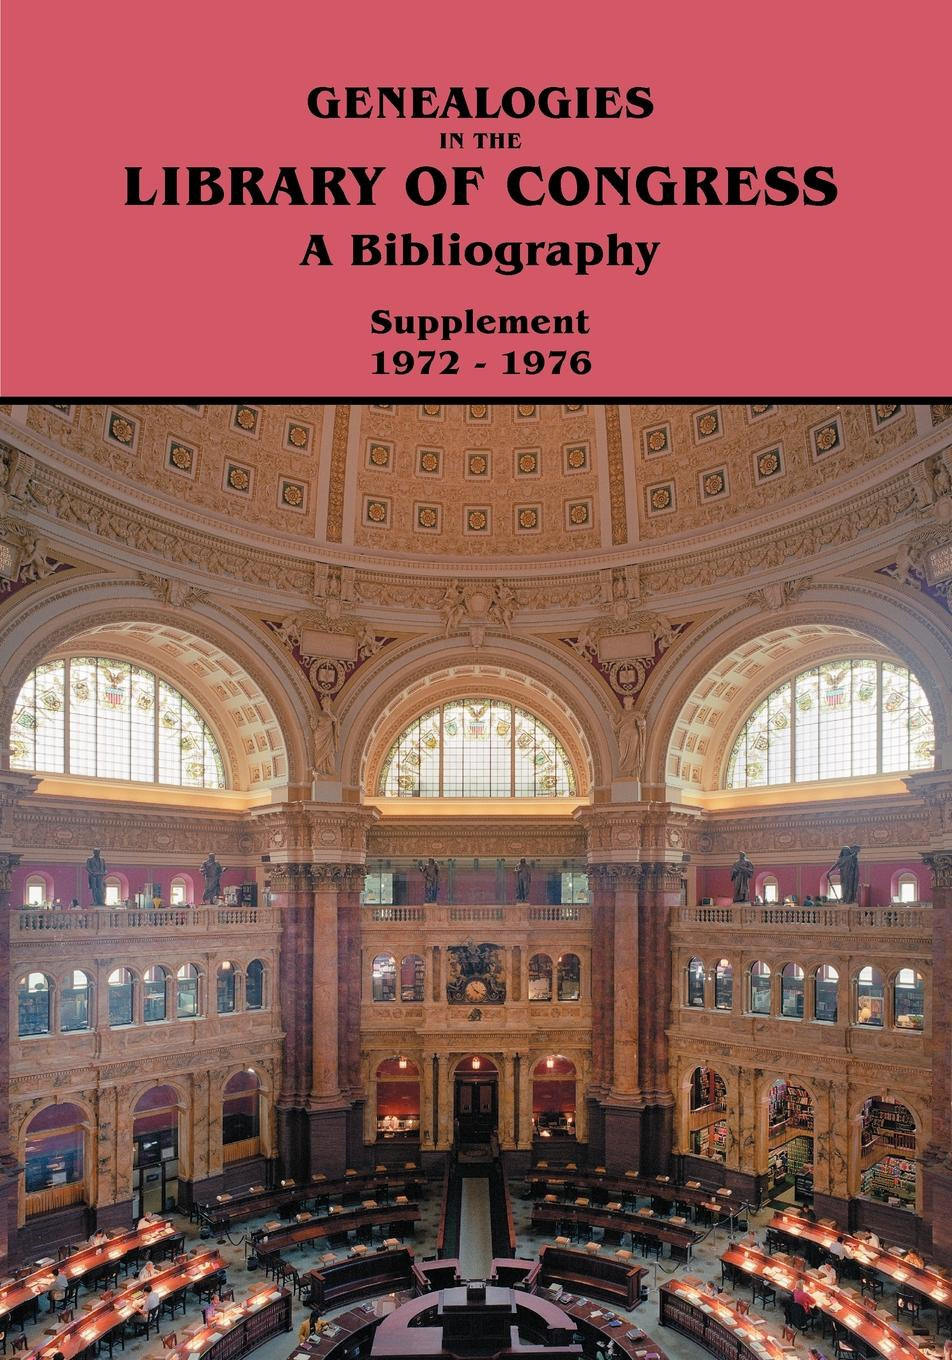 Library of Congress Genealogies in the Congress. A Bibliography. Supplement 1972-1976